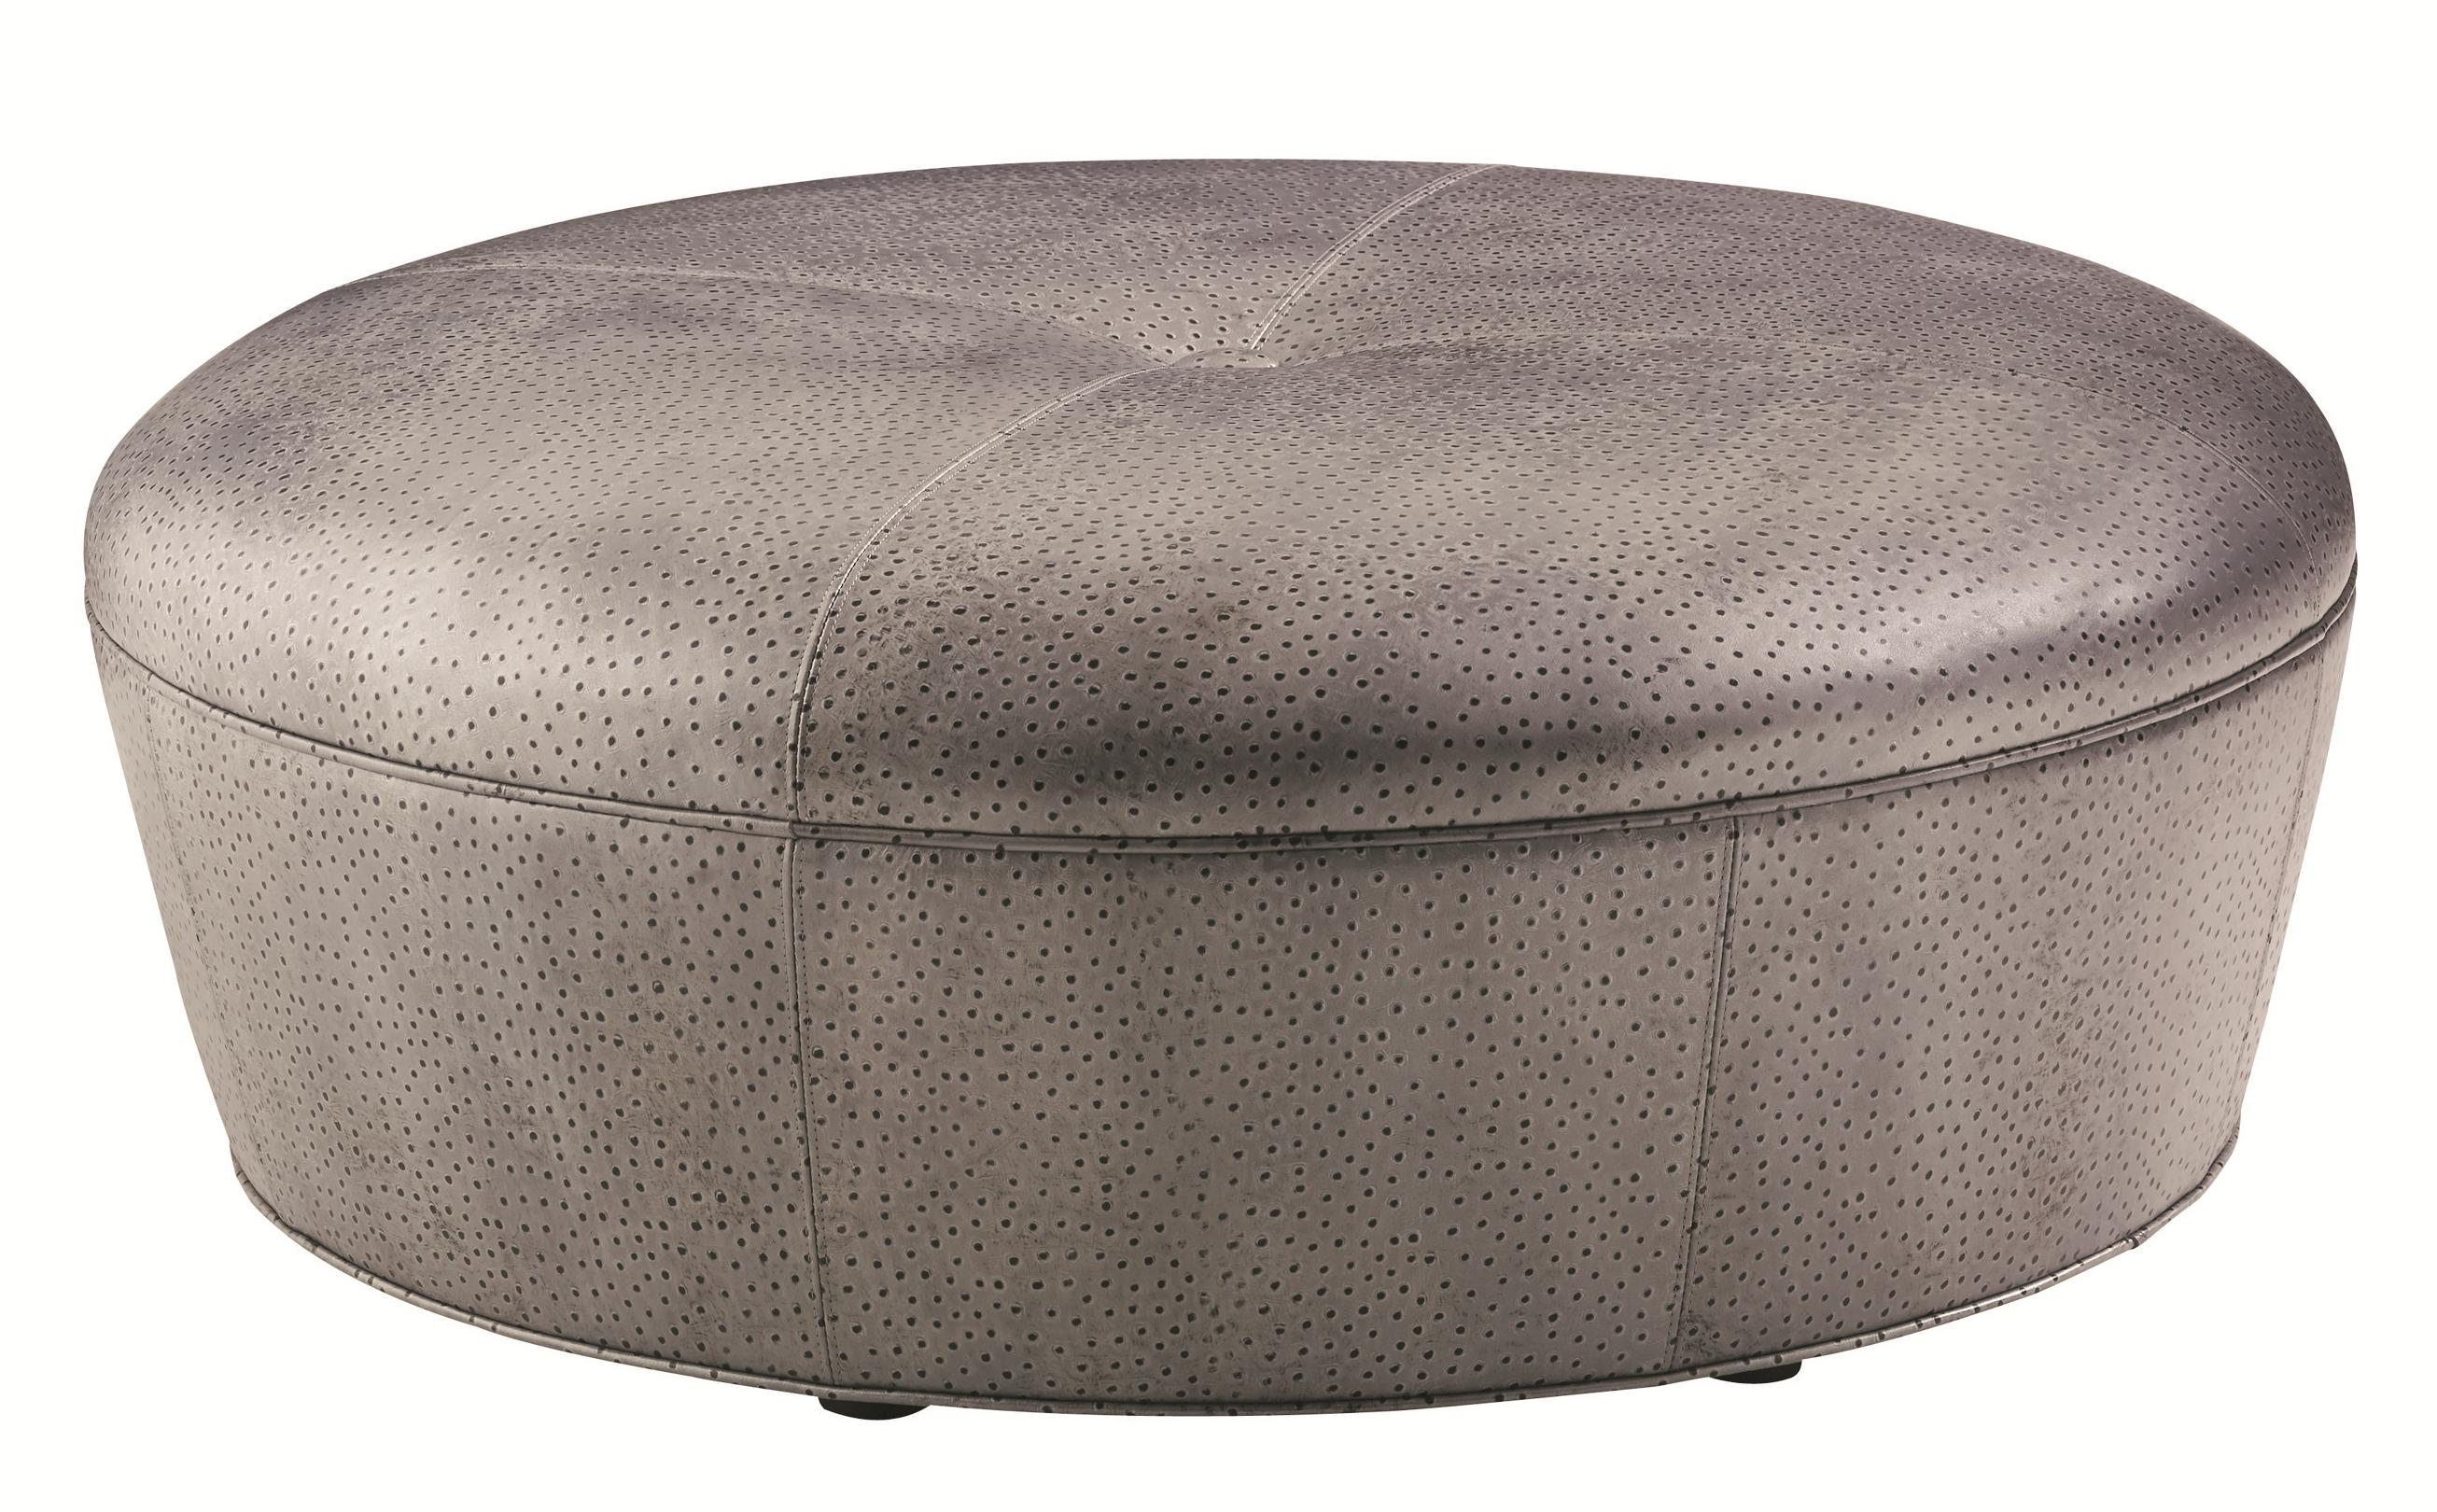 Carrera Claudia Cocktail Ottoman by Lexington at Fisher Home Furnishings